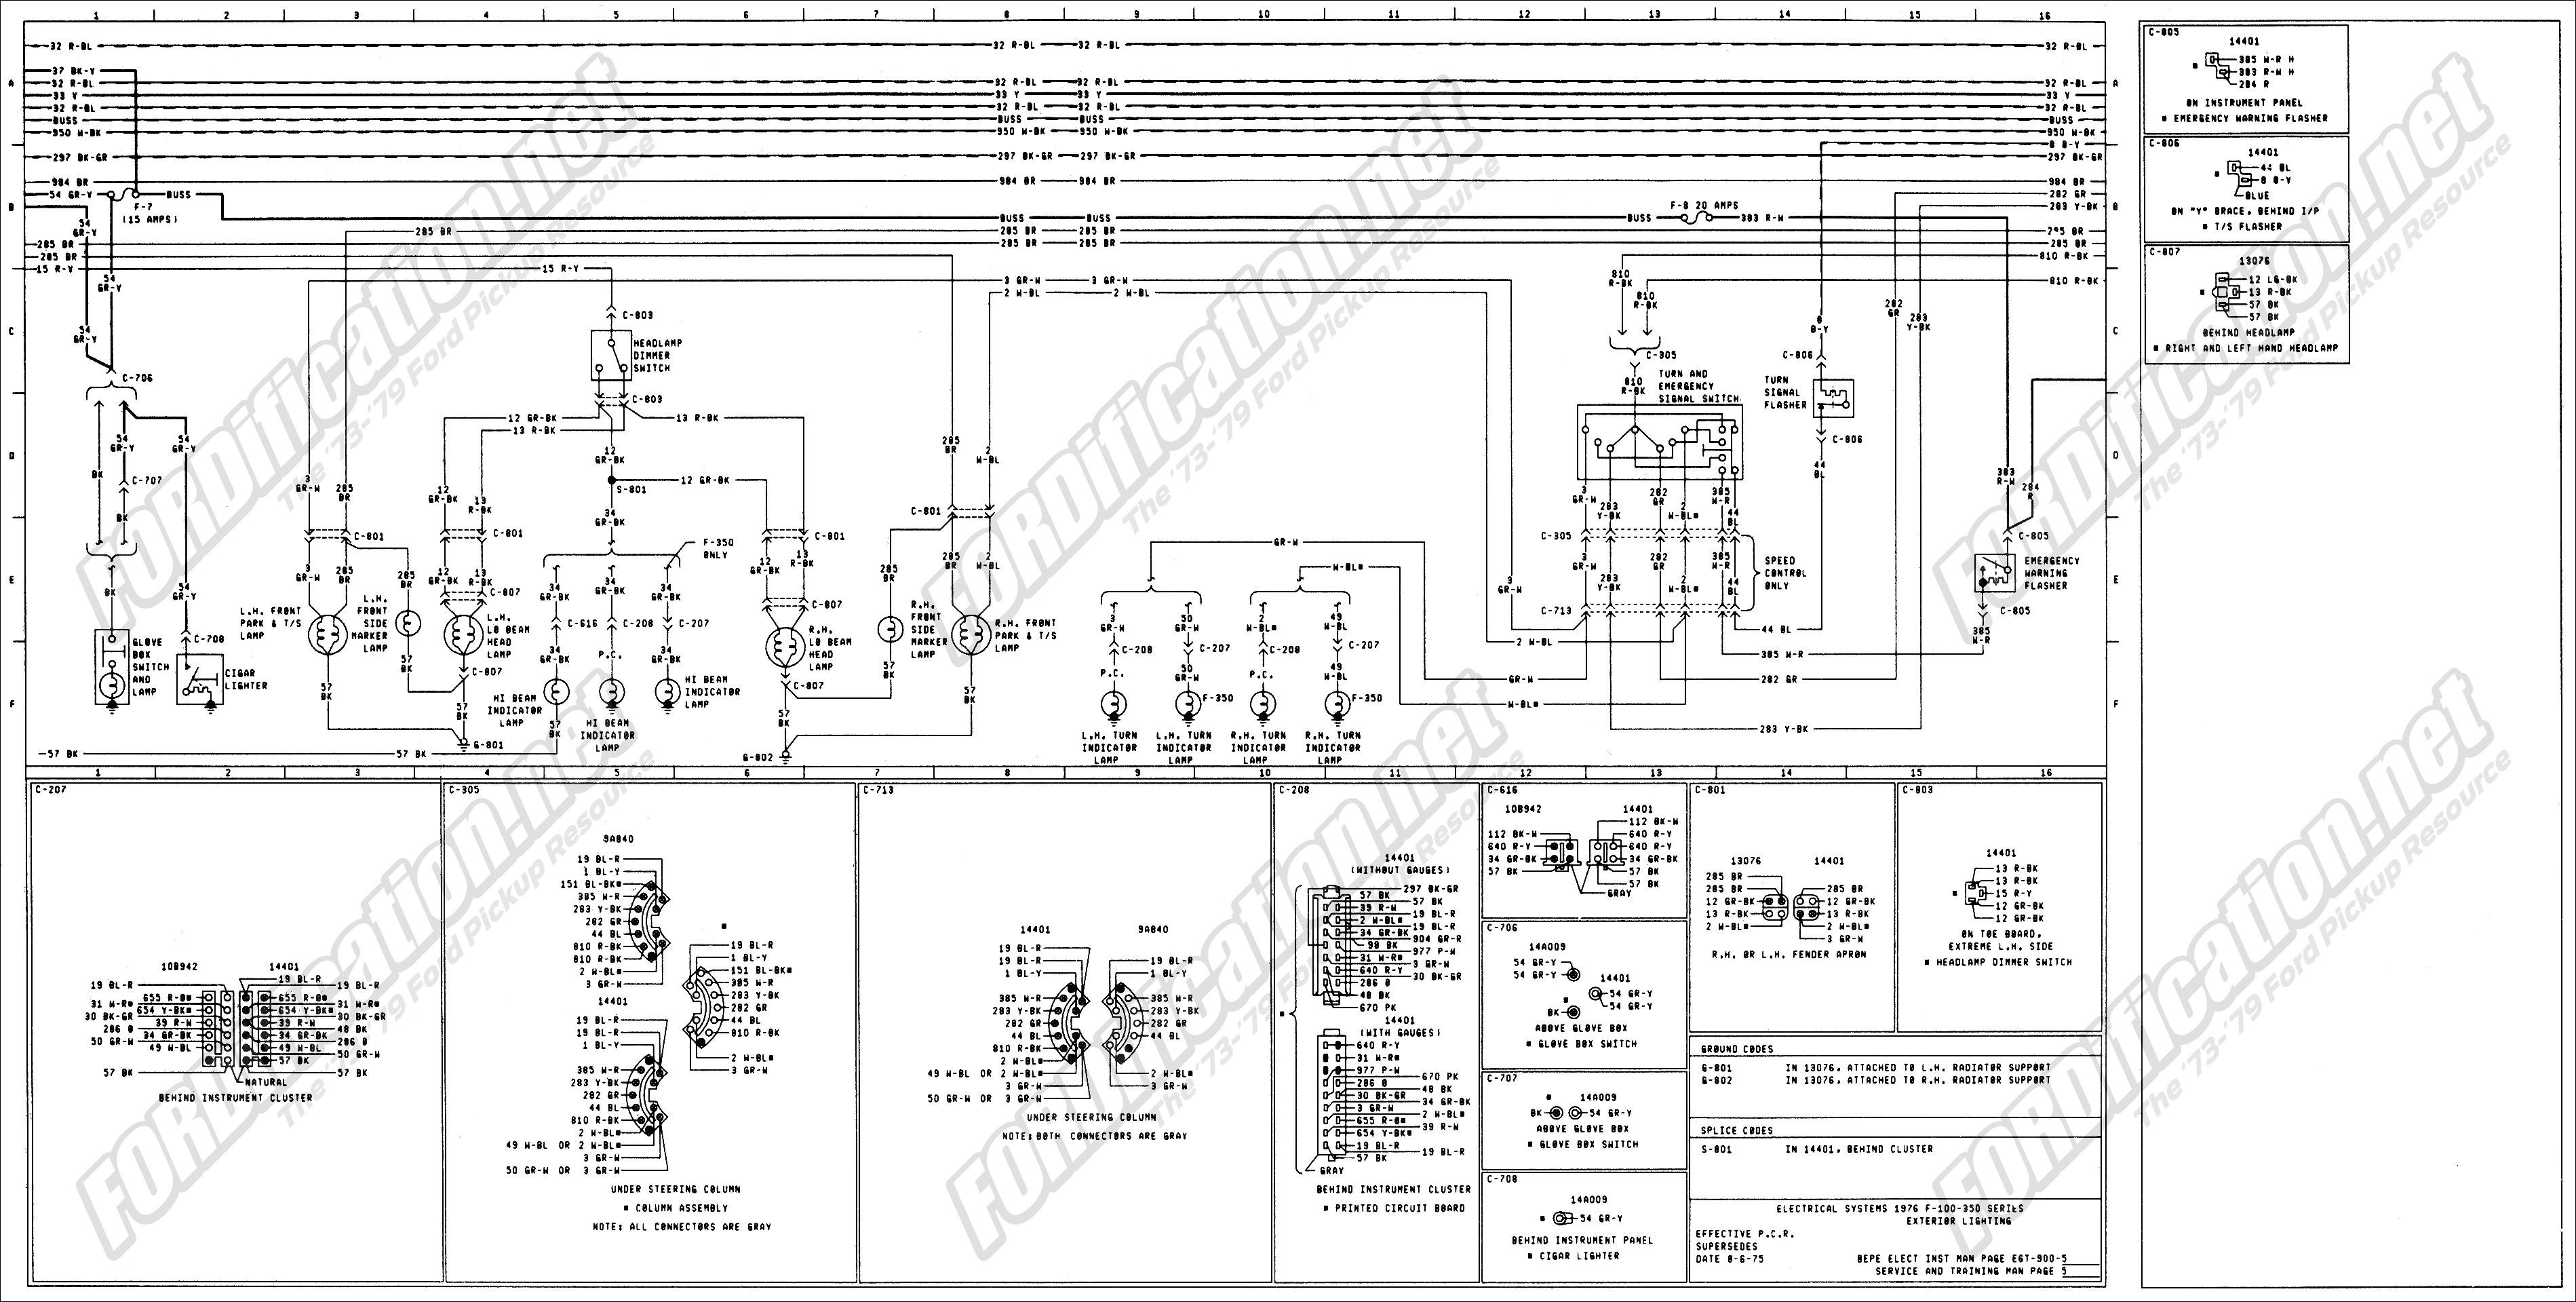 1977 Ford Alternator Wiring Diagram Ford 3G Alternator